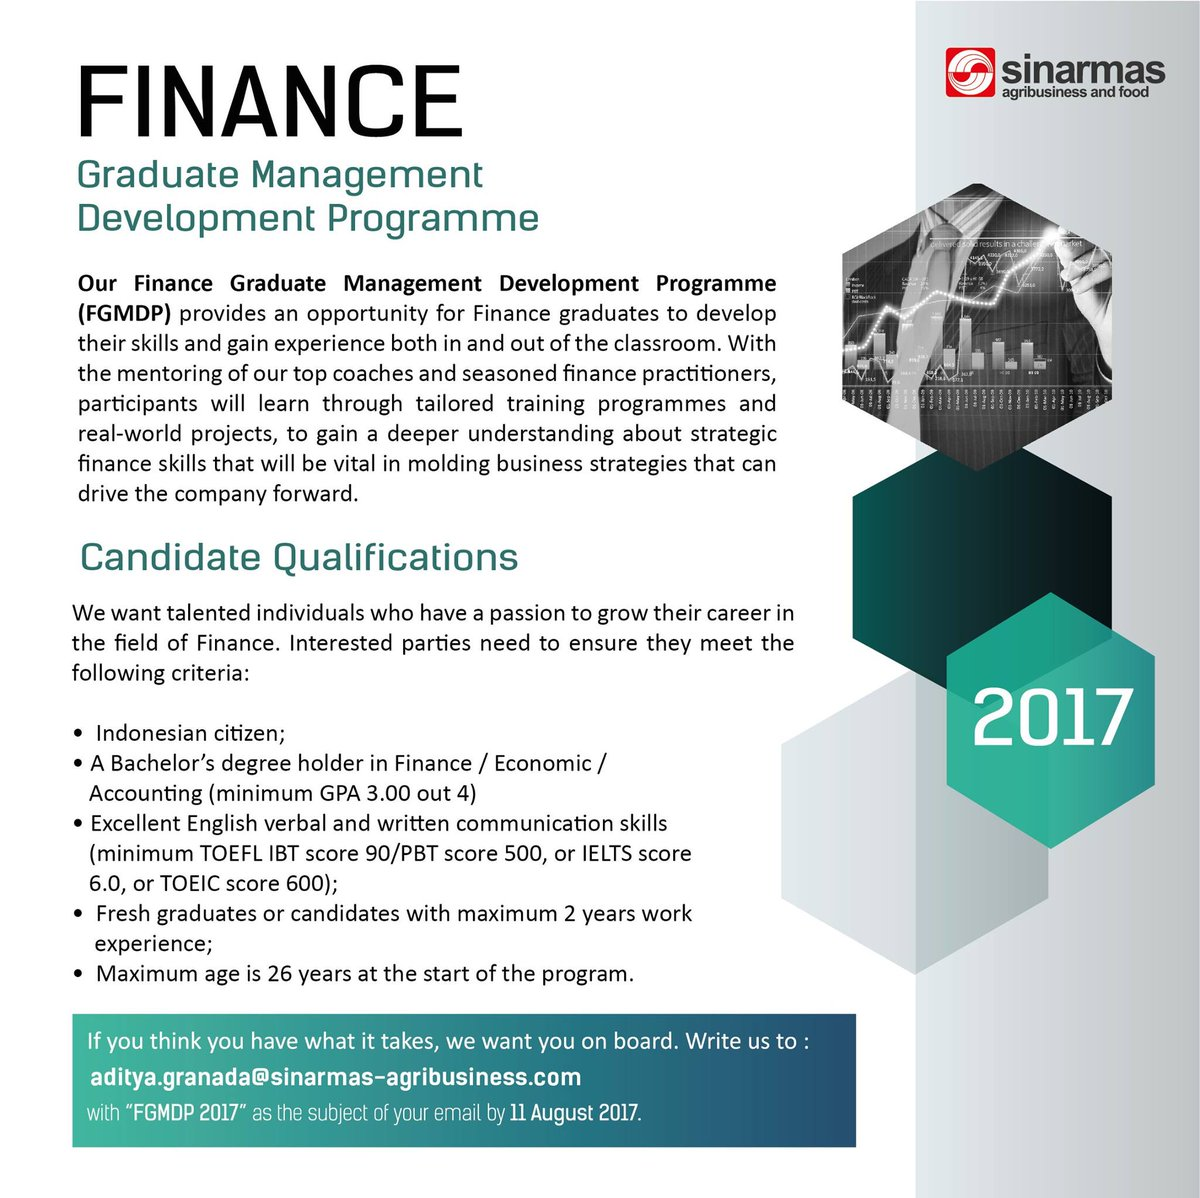 Masters Degree In Finance Salary